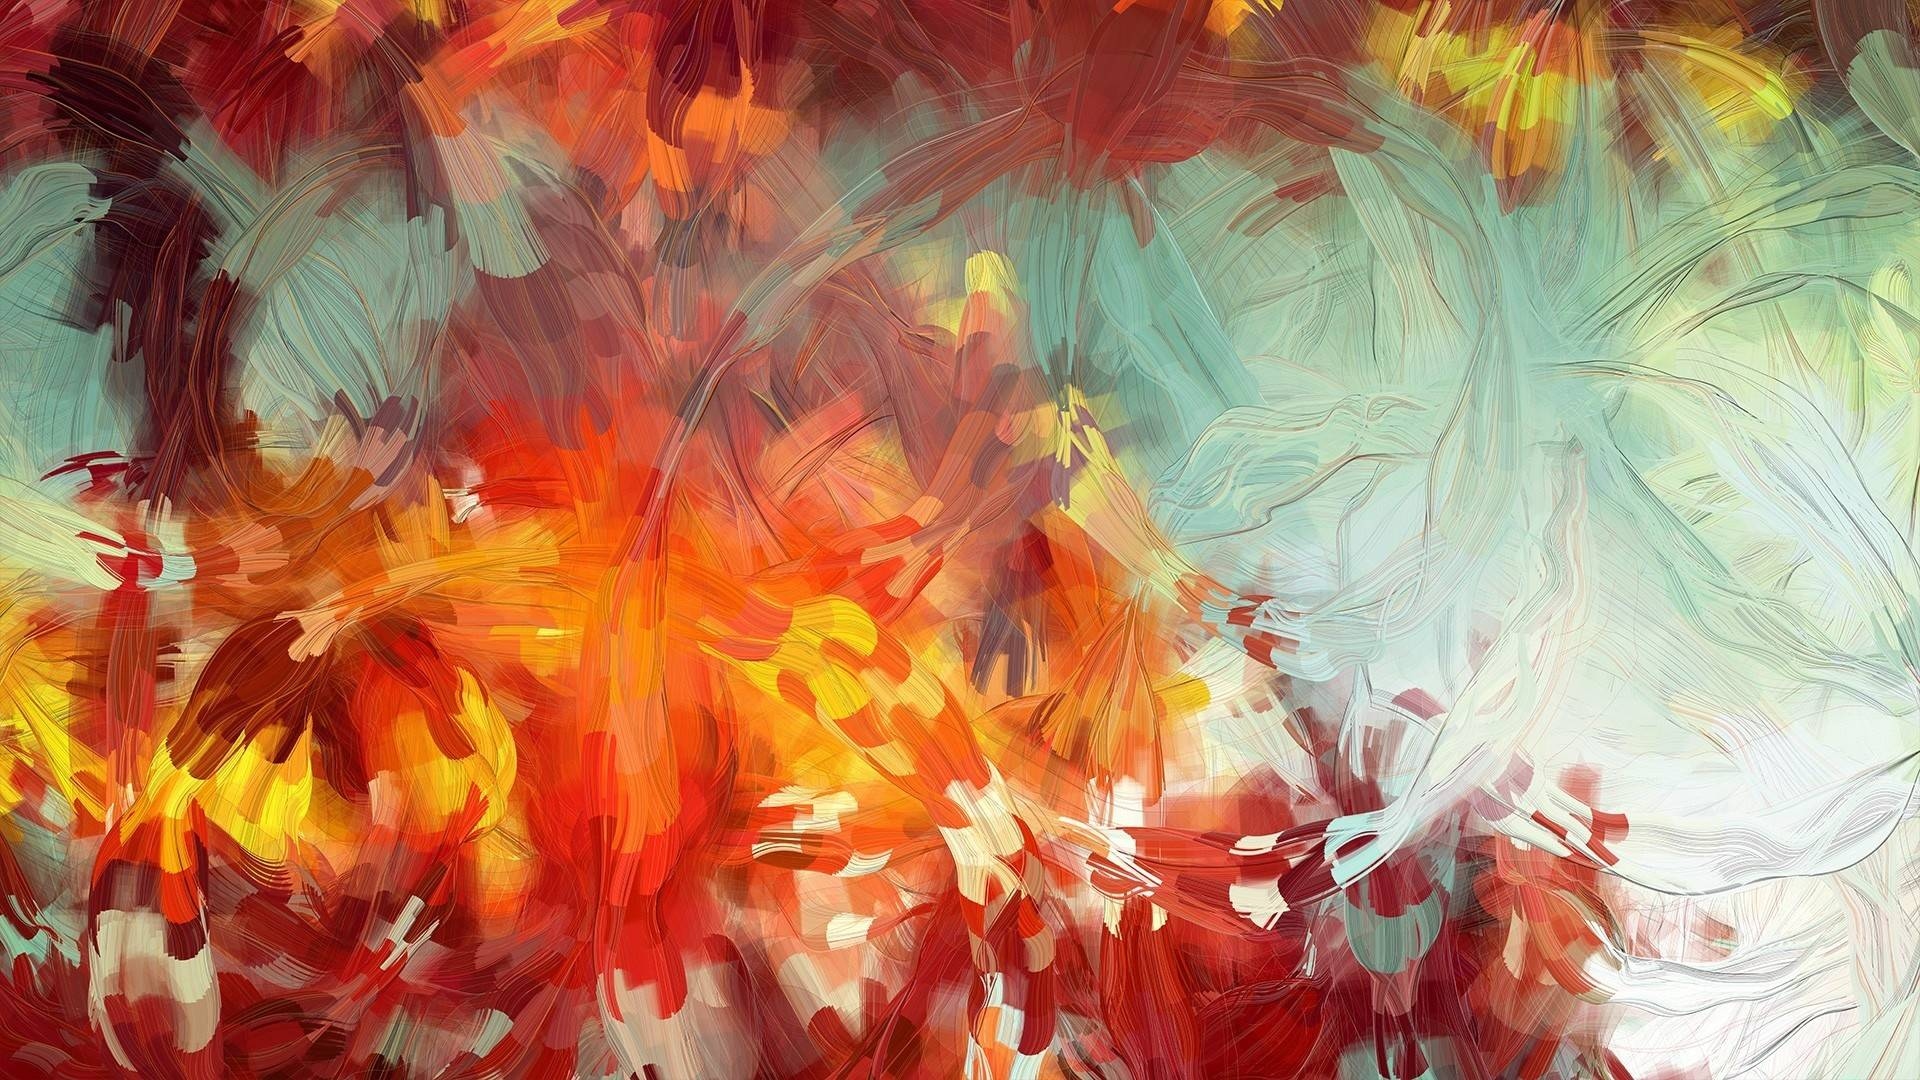 abstract art backgrounds - photo #46